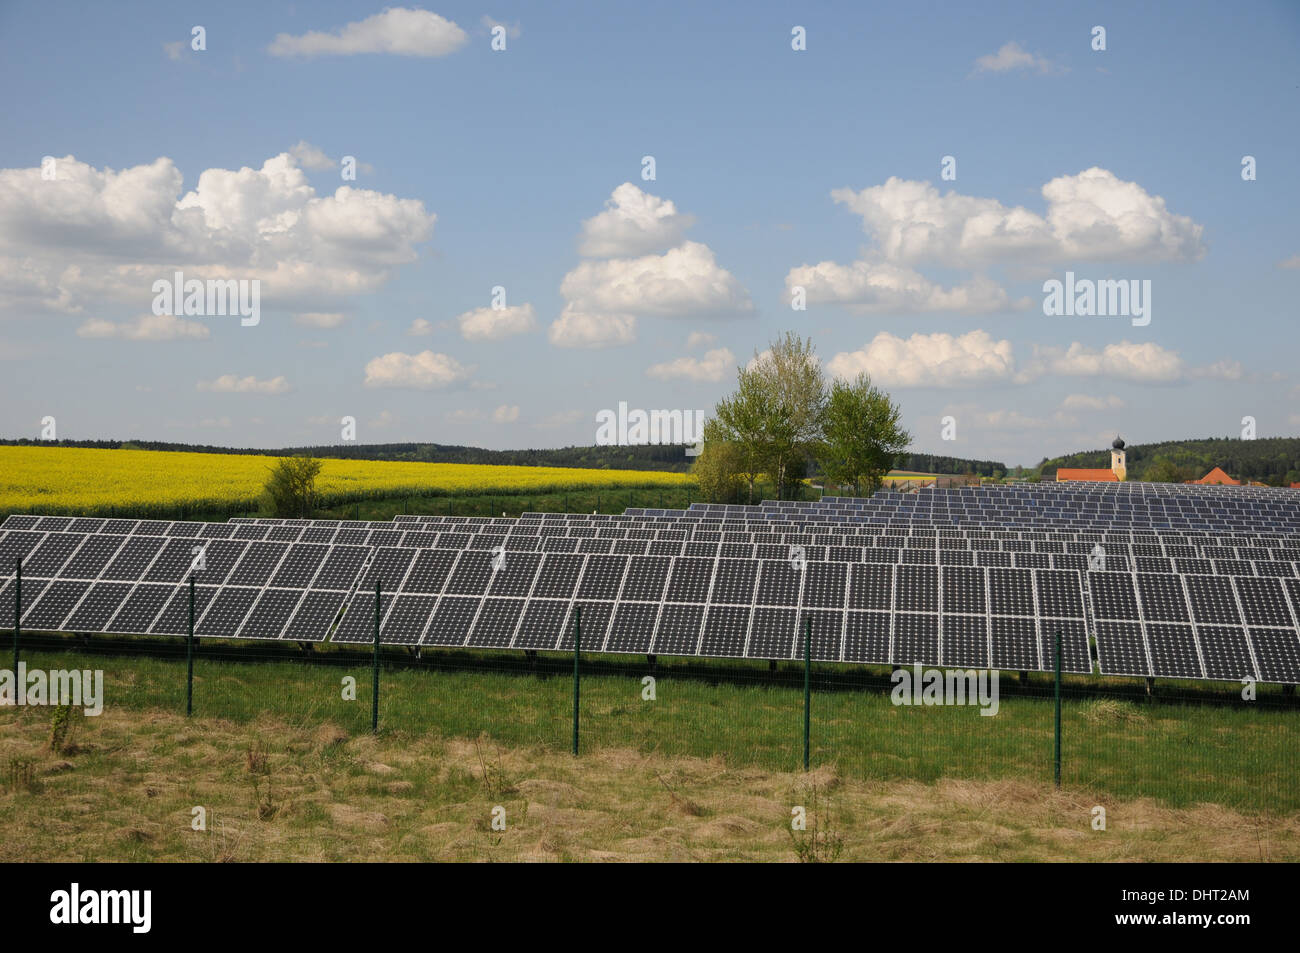 Sunenergy - Stock Image